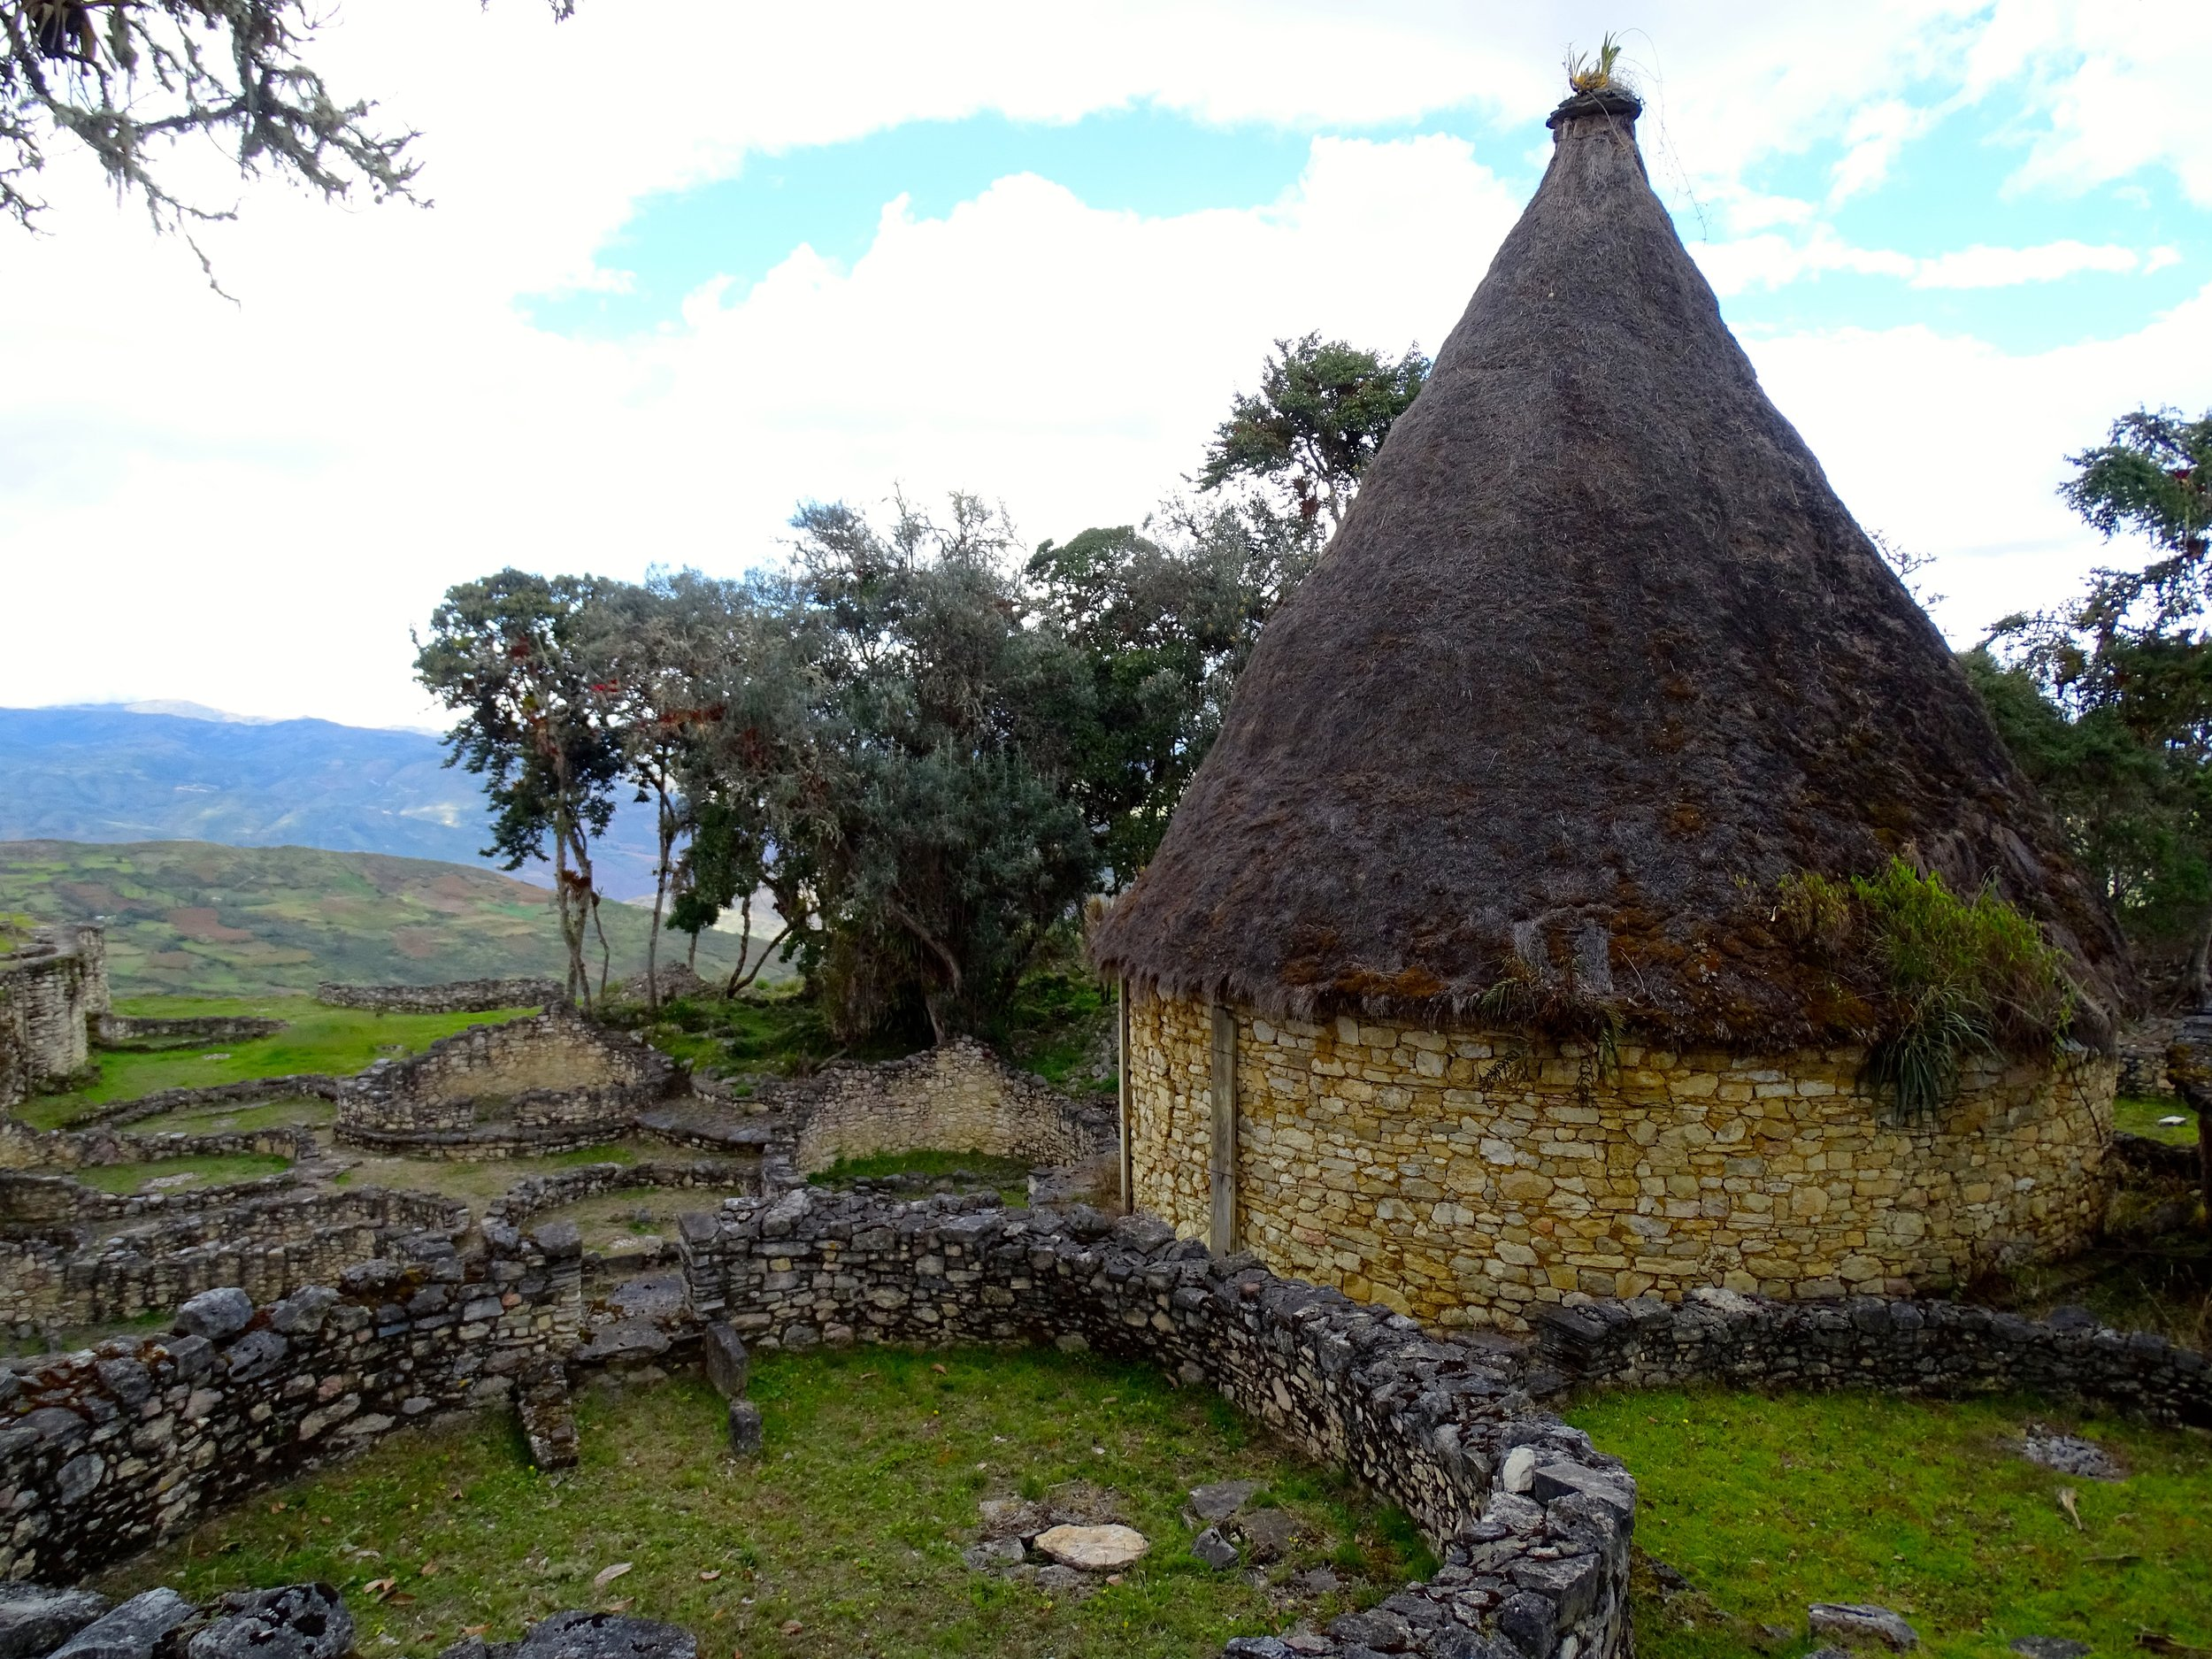 An example of what the roof design looked like, using grasses over wood frames in a thatch-like manner.